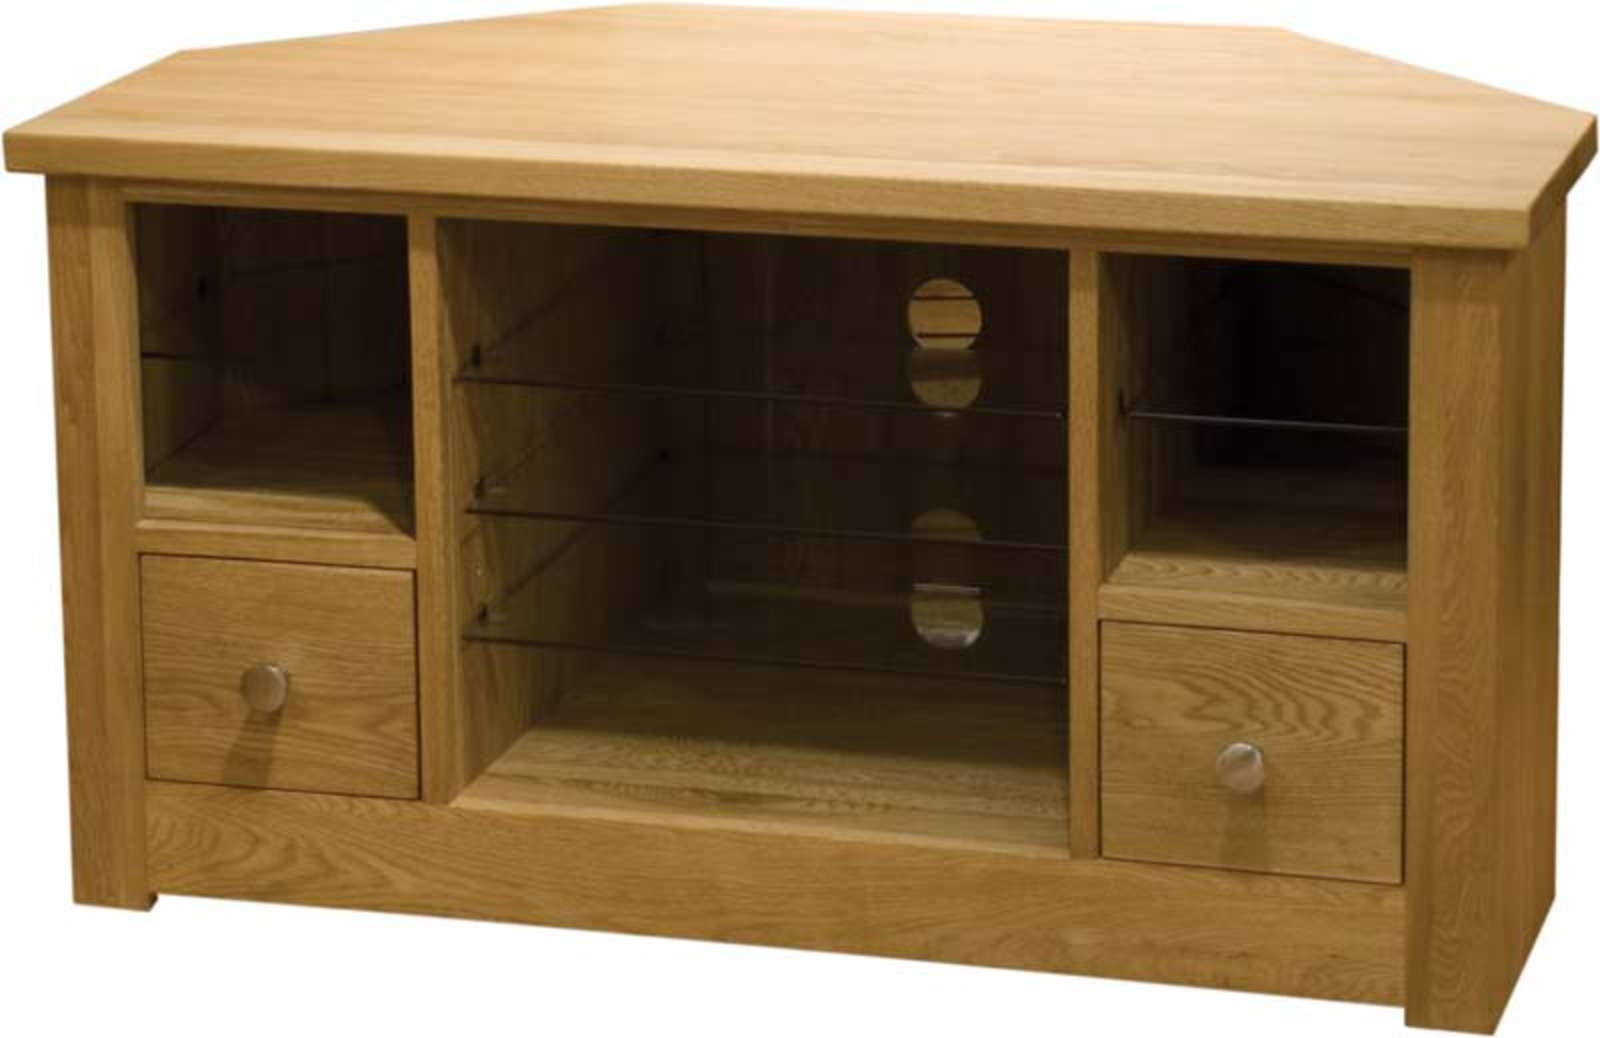 Oak Corner Tv Unit – Pine, Oak, Painted And Bespoke Furniture In Painted Corner Tv Cabinets (View 18 of 20)